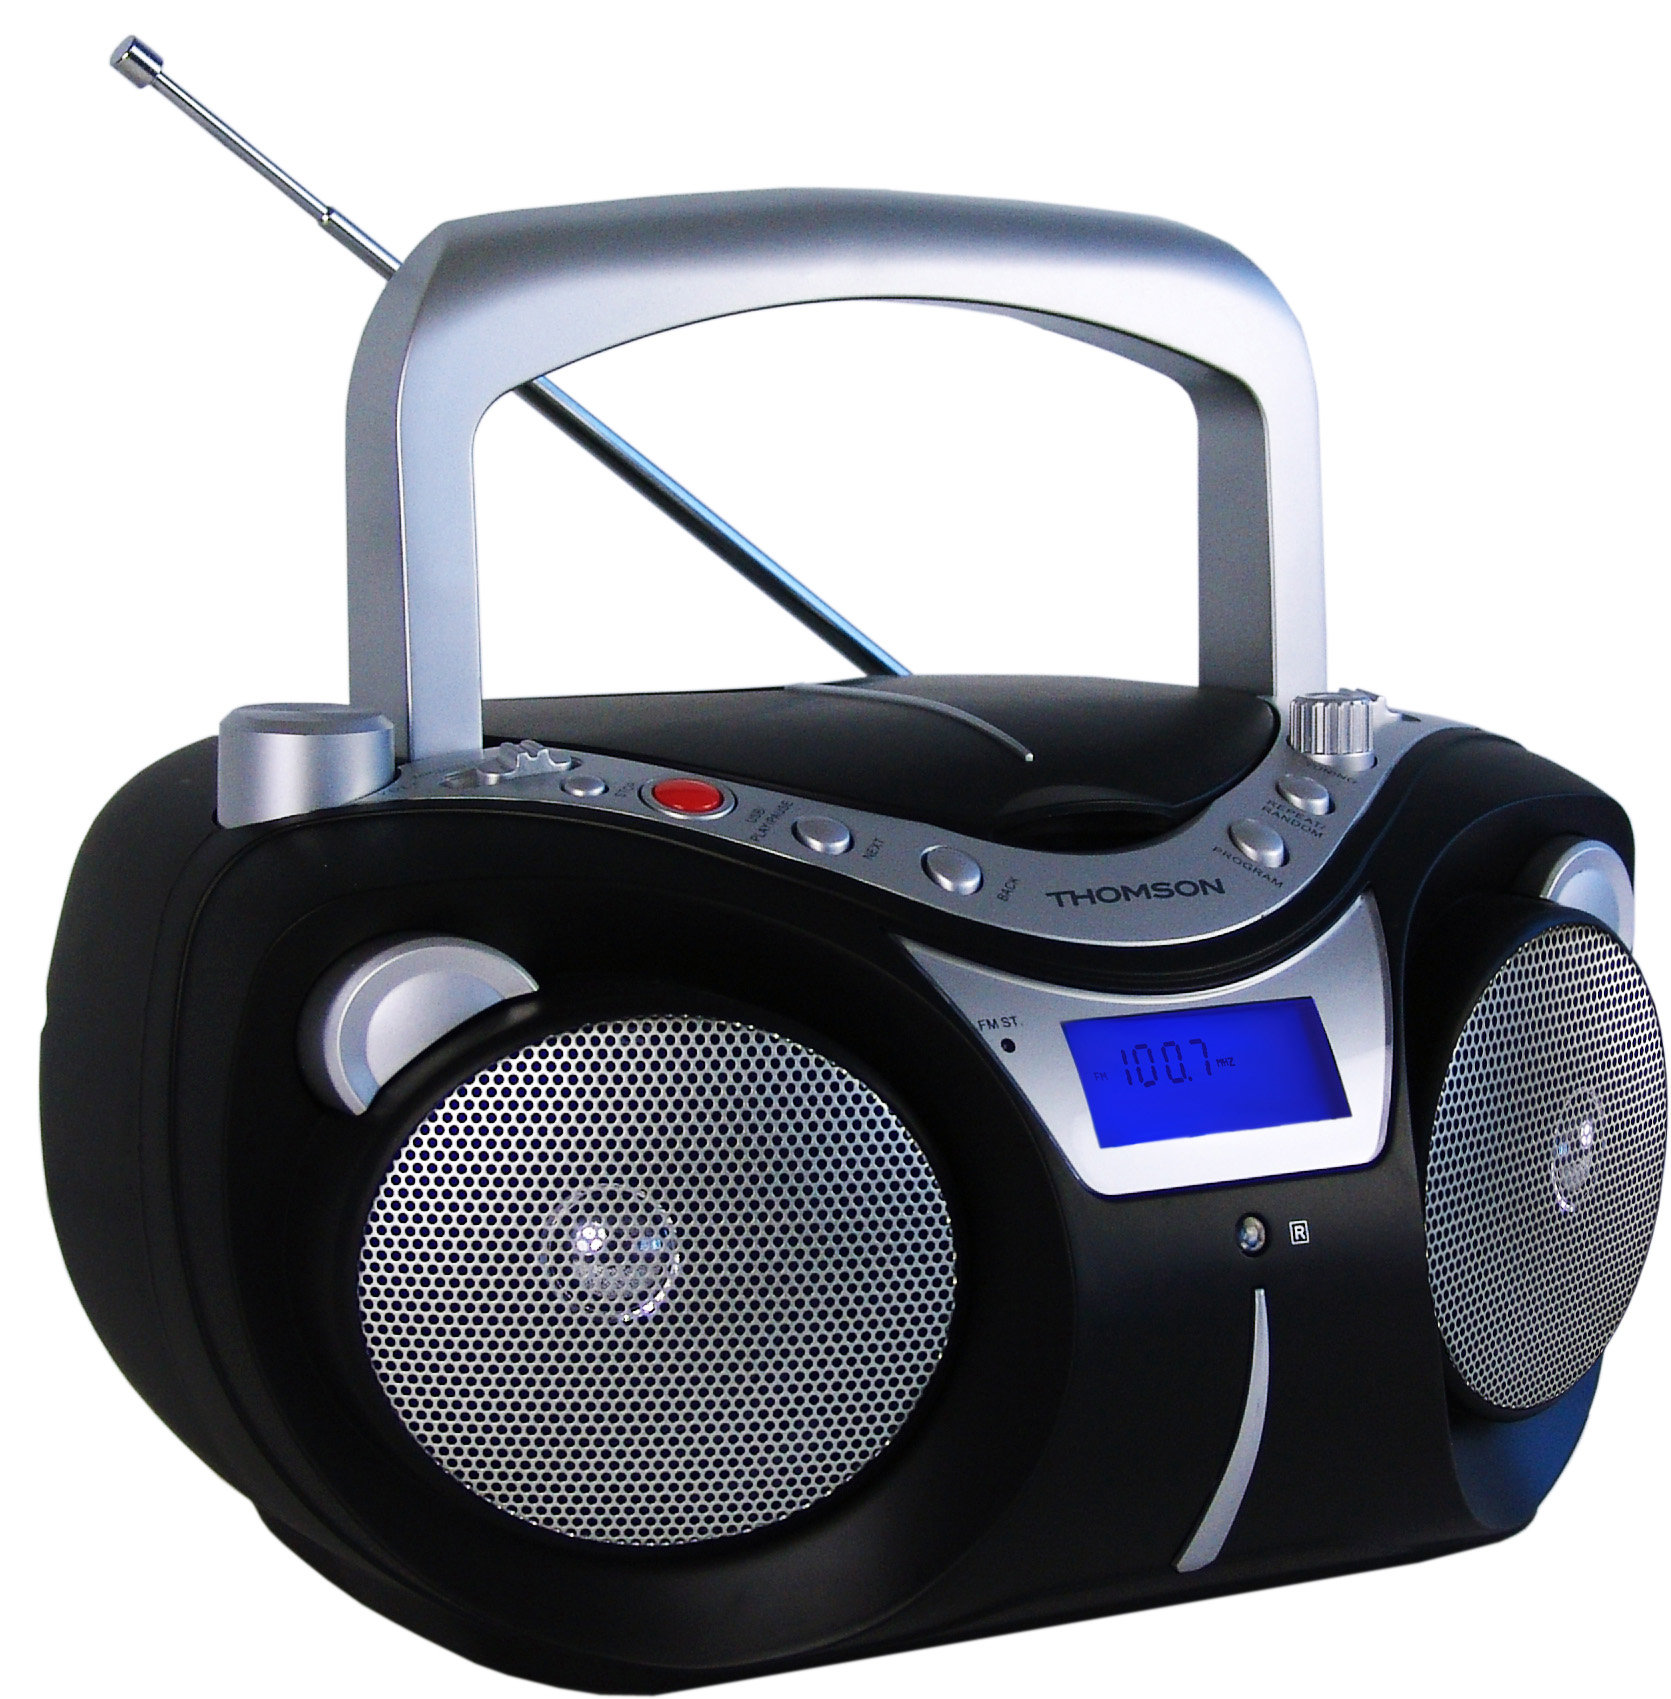 thomson rcd203u cd radio cd mp3 player usb am fm radio. Black Bedroom Furniture Sets. Home Design Ideas